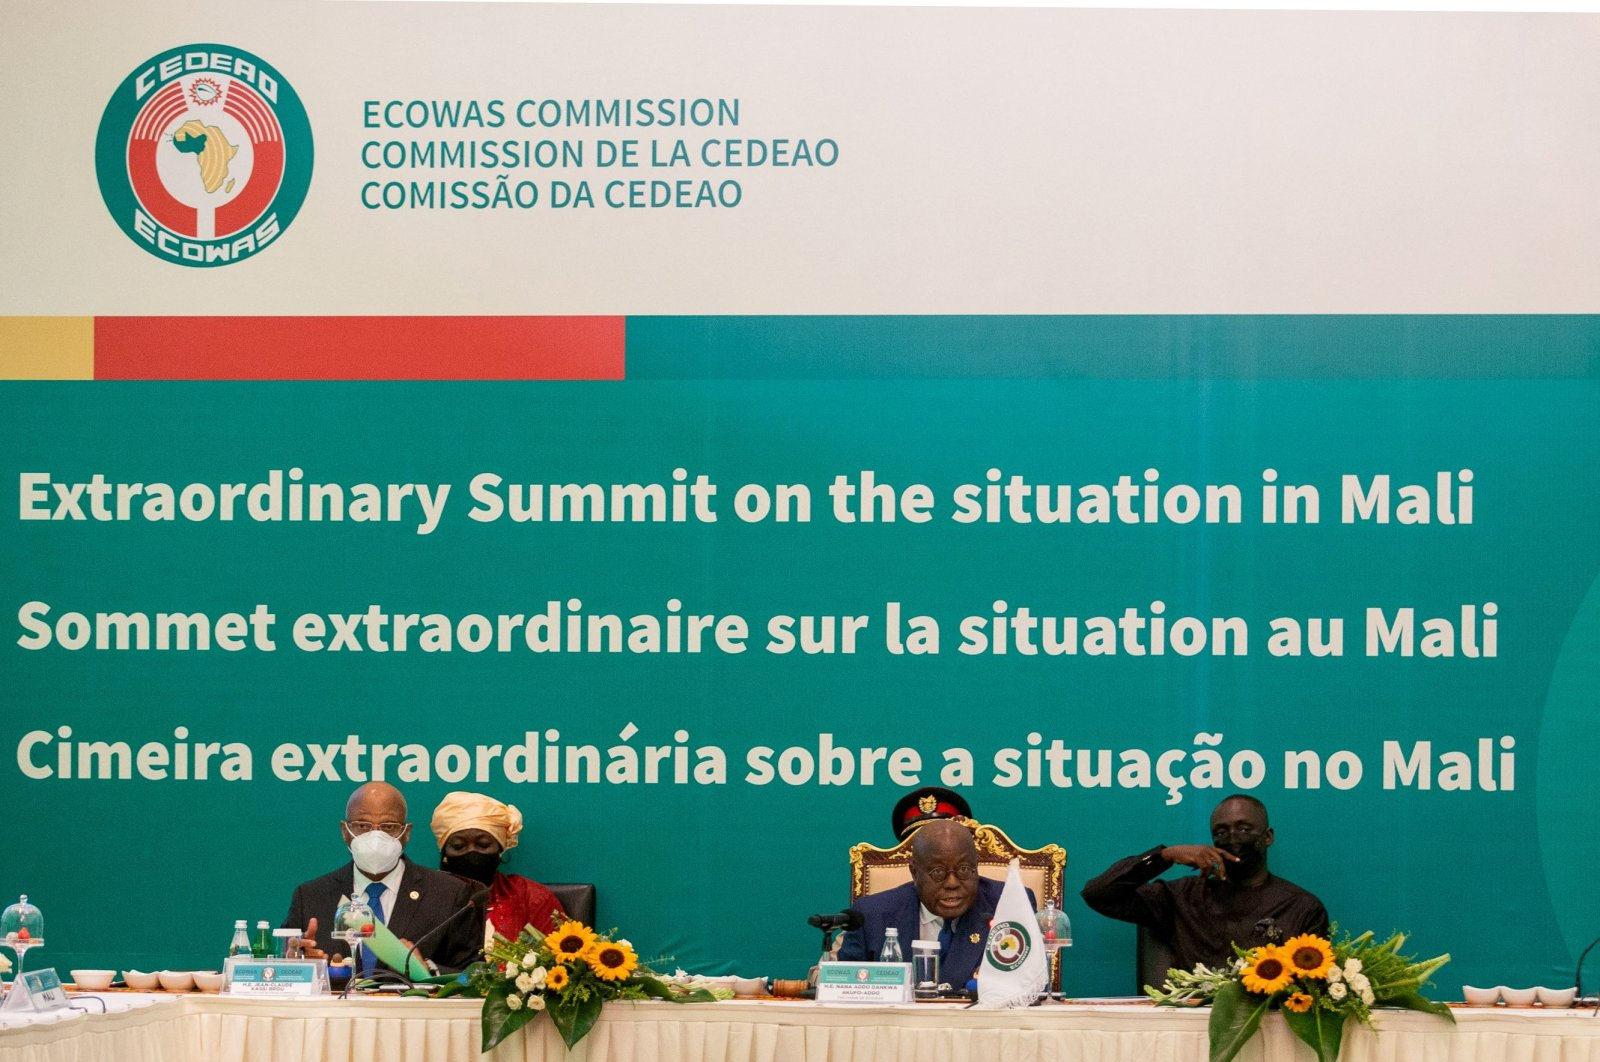 President of Ghana and Chair of the ECOWAS Nana Akufo-Addo (C), addresses dignitaries at the ECOWAS Extraordinary Summit on the situation in Mali in Accra, Ghana, on May 30, 2021. (AFP Photo)